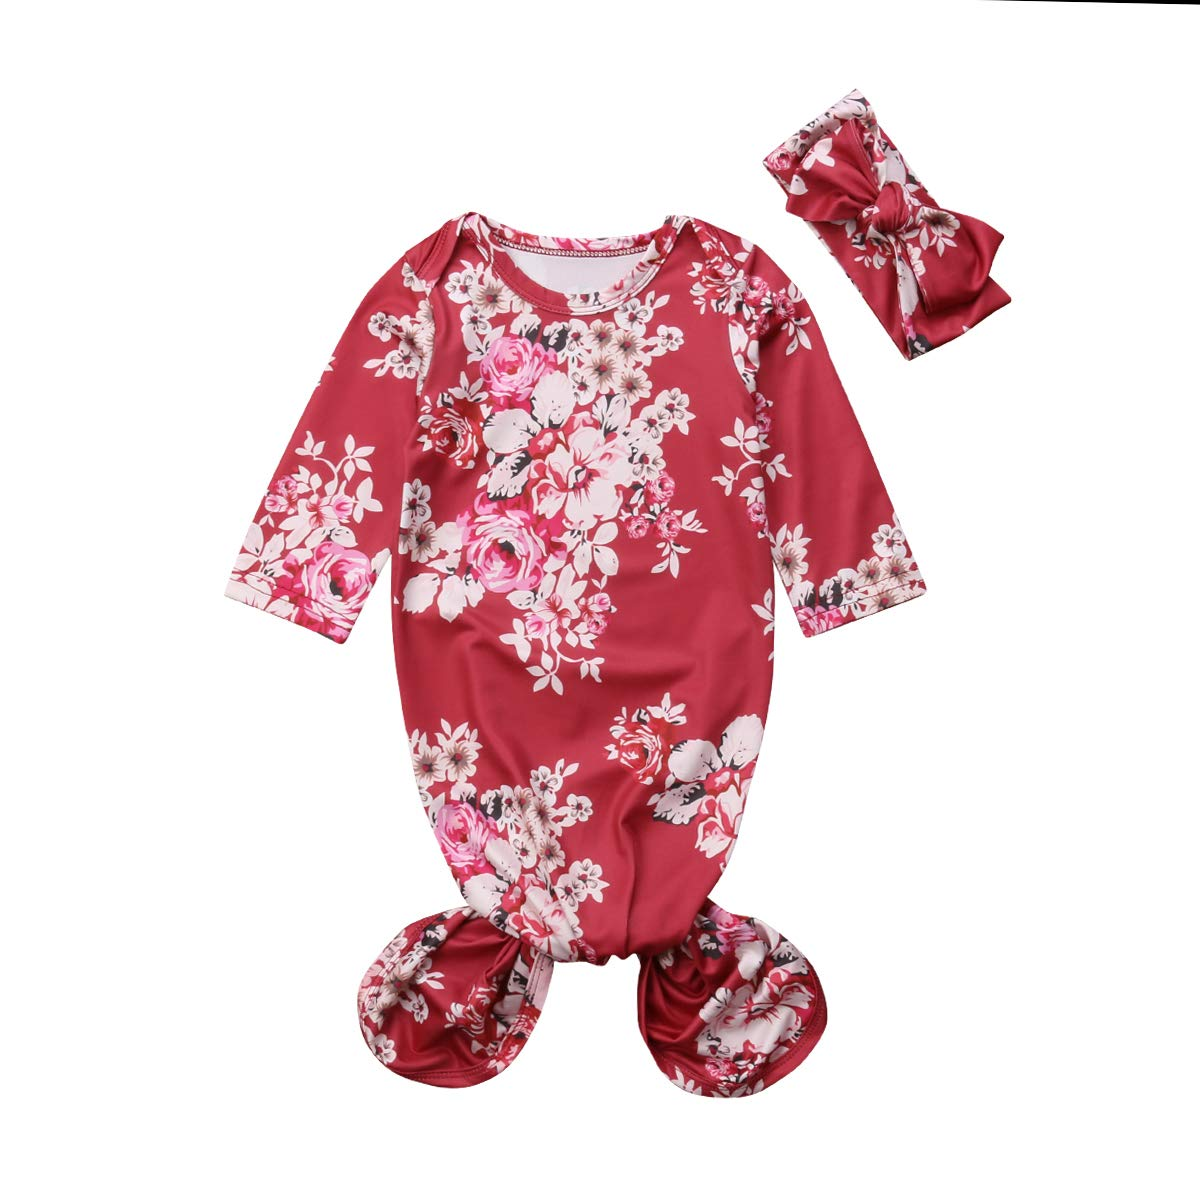 Mubineo Infant Newborn Baby Floral Sleeping Bag Swaddle Blanket with Headband Outfits (Red, 0-6 Months)